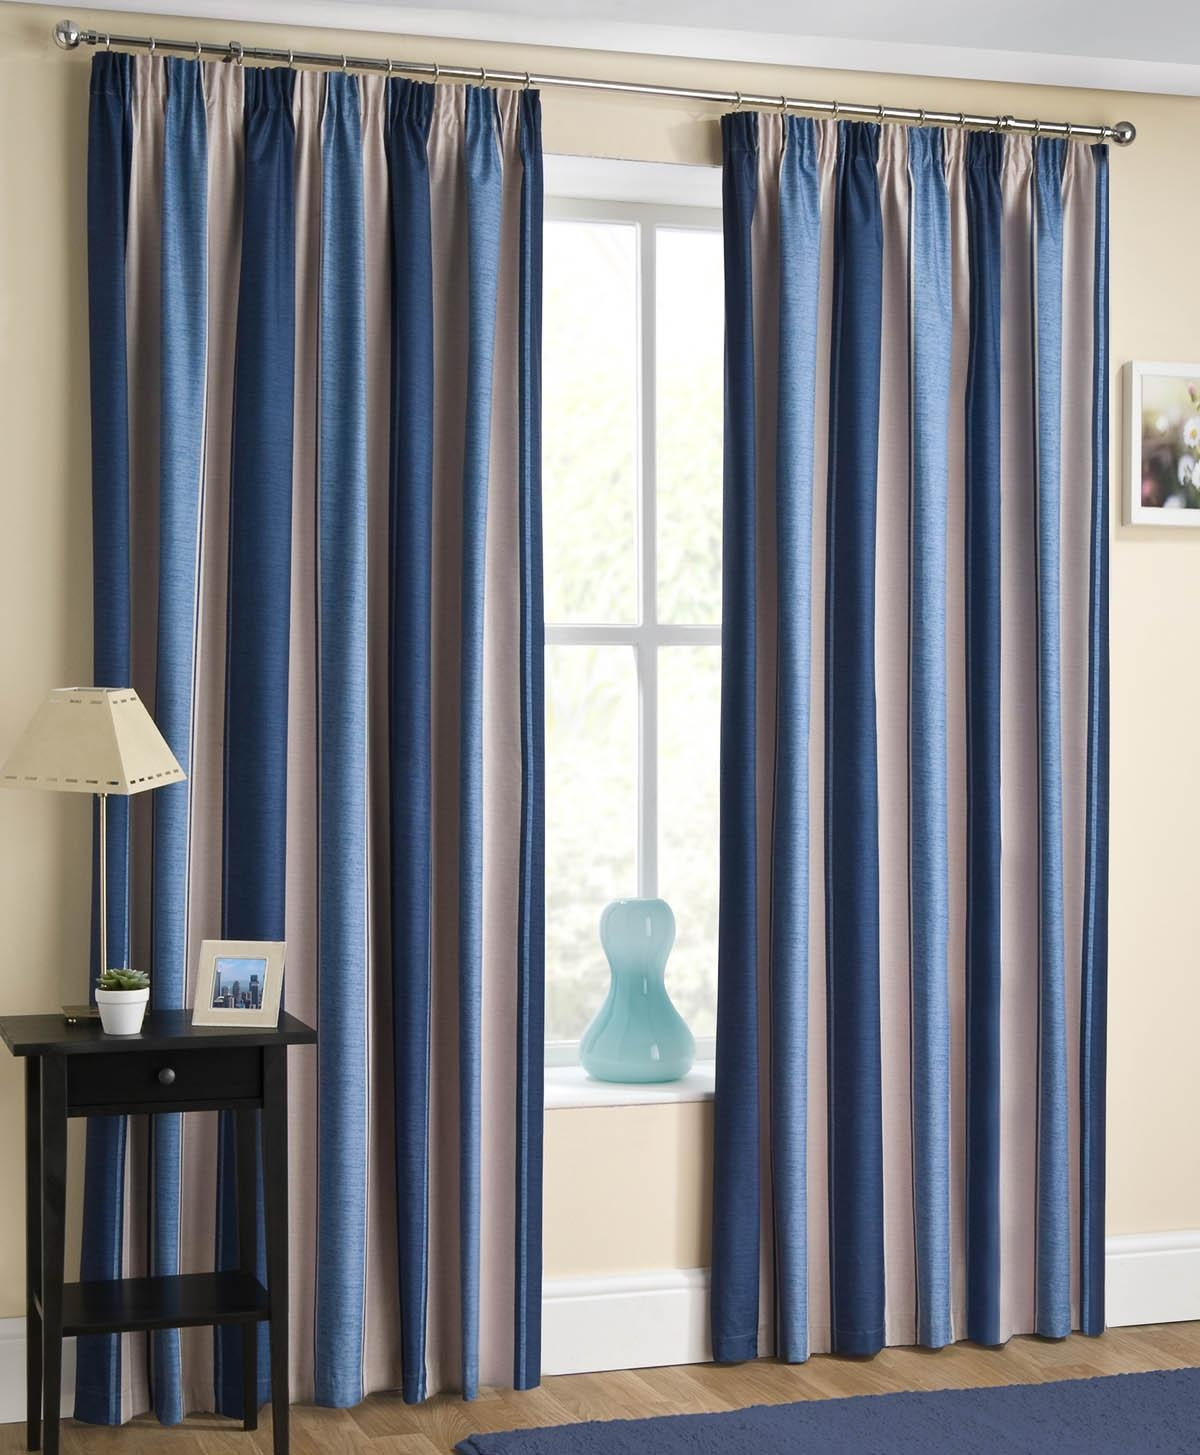 Blue Striped Curtains View Curtains Online Now Terrys Fabrics With Multi Coloured Striped Curtains (Image 2 of 15)